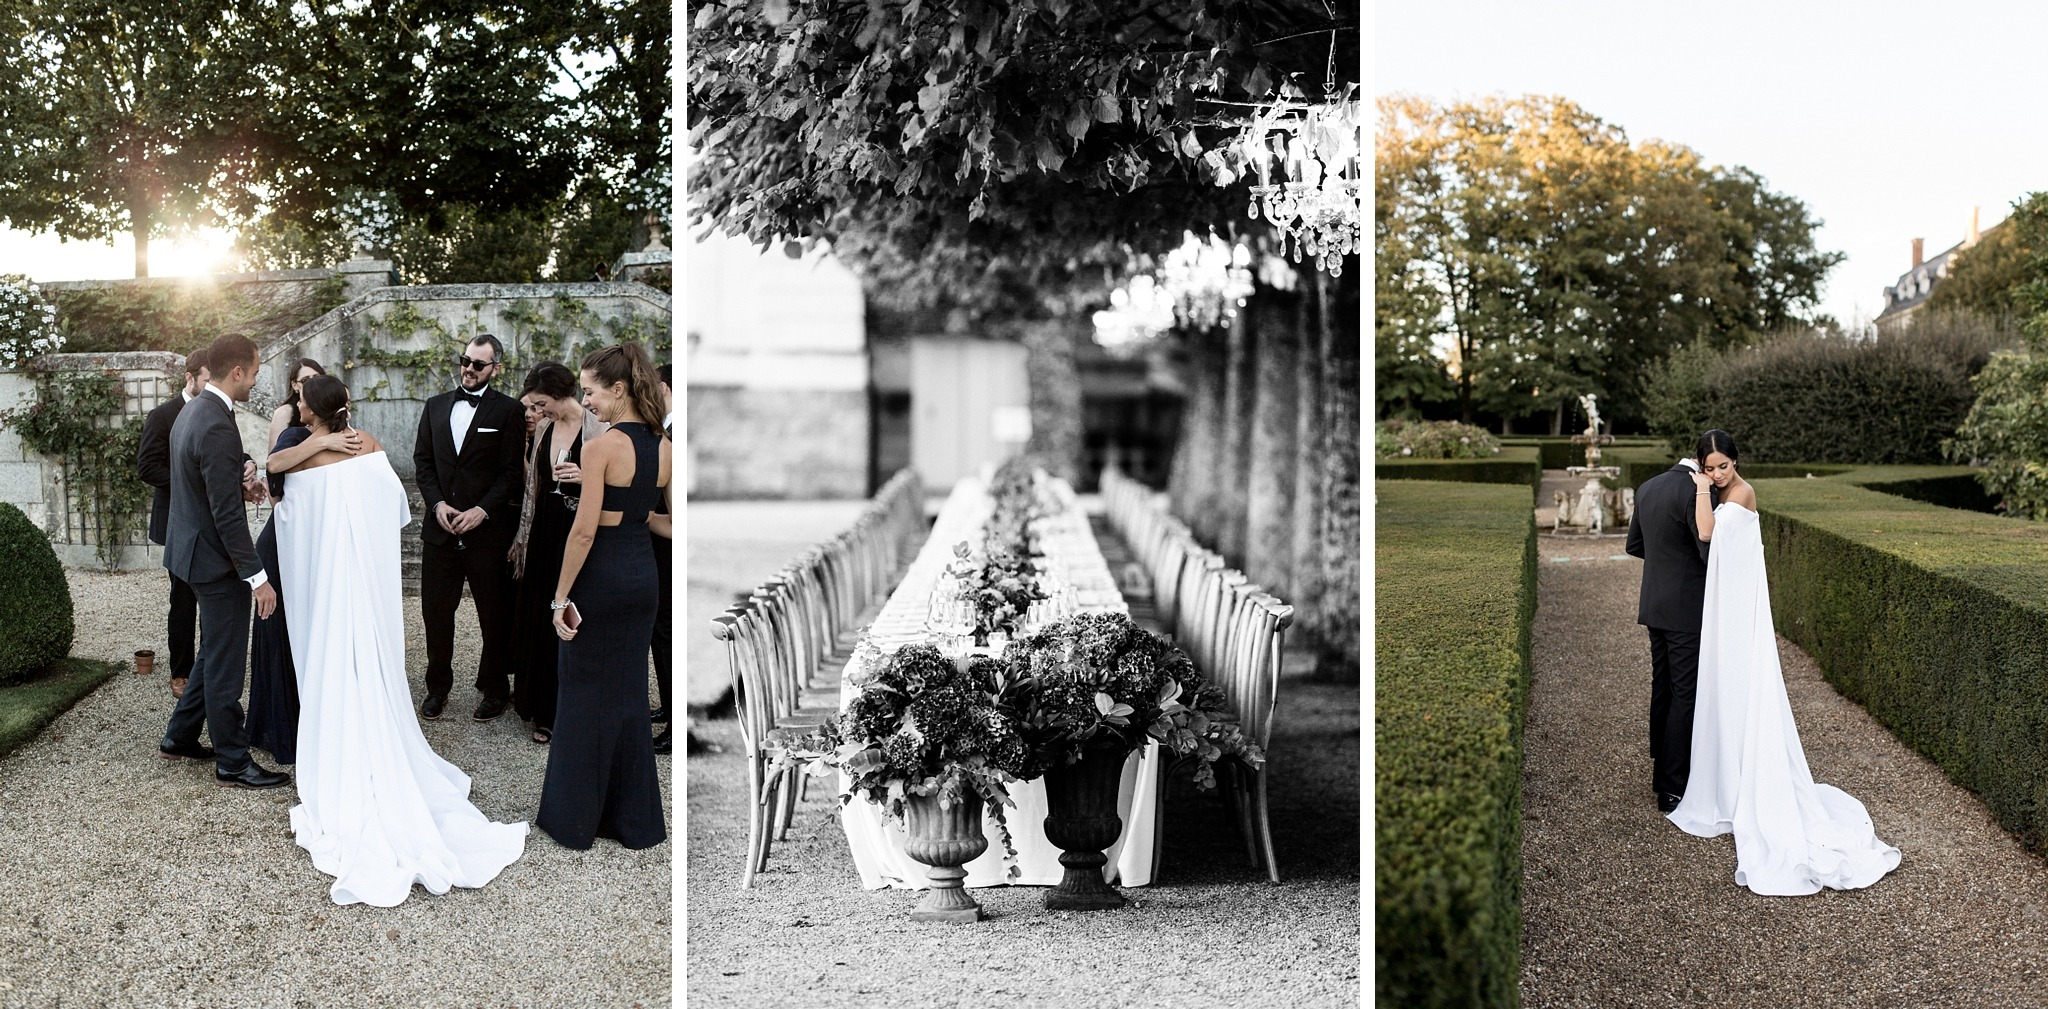 chateau-wedding-france-chanel-eric-as-seen-on-vogue-with-sarah-falugo-photographer_0197